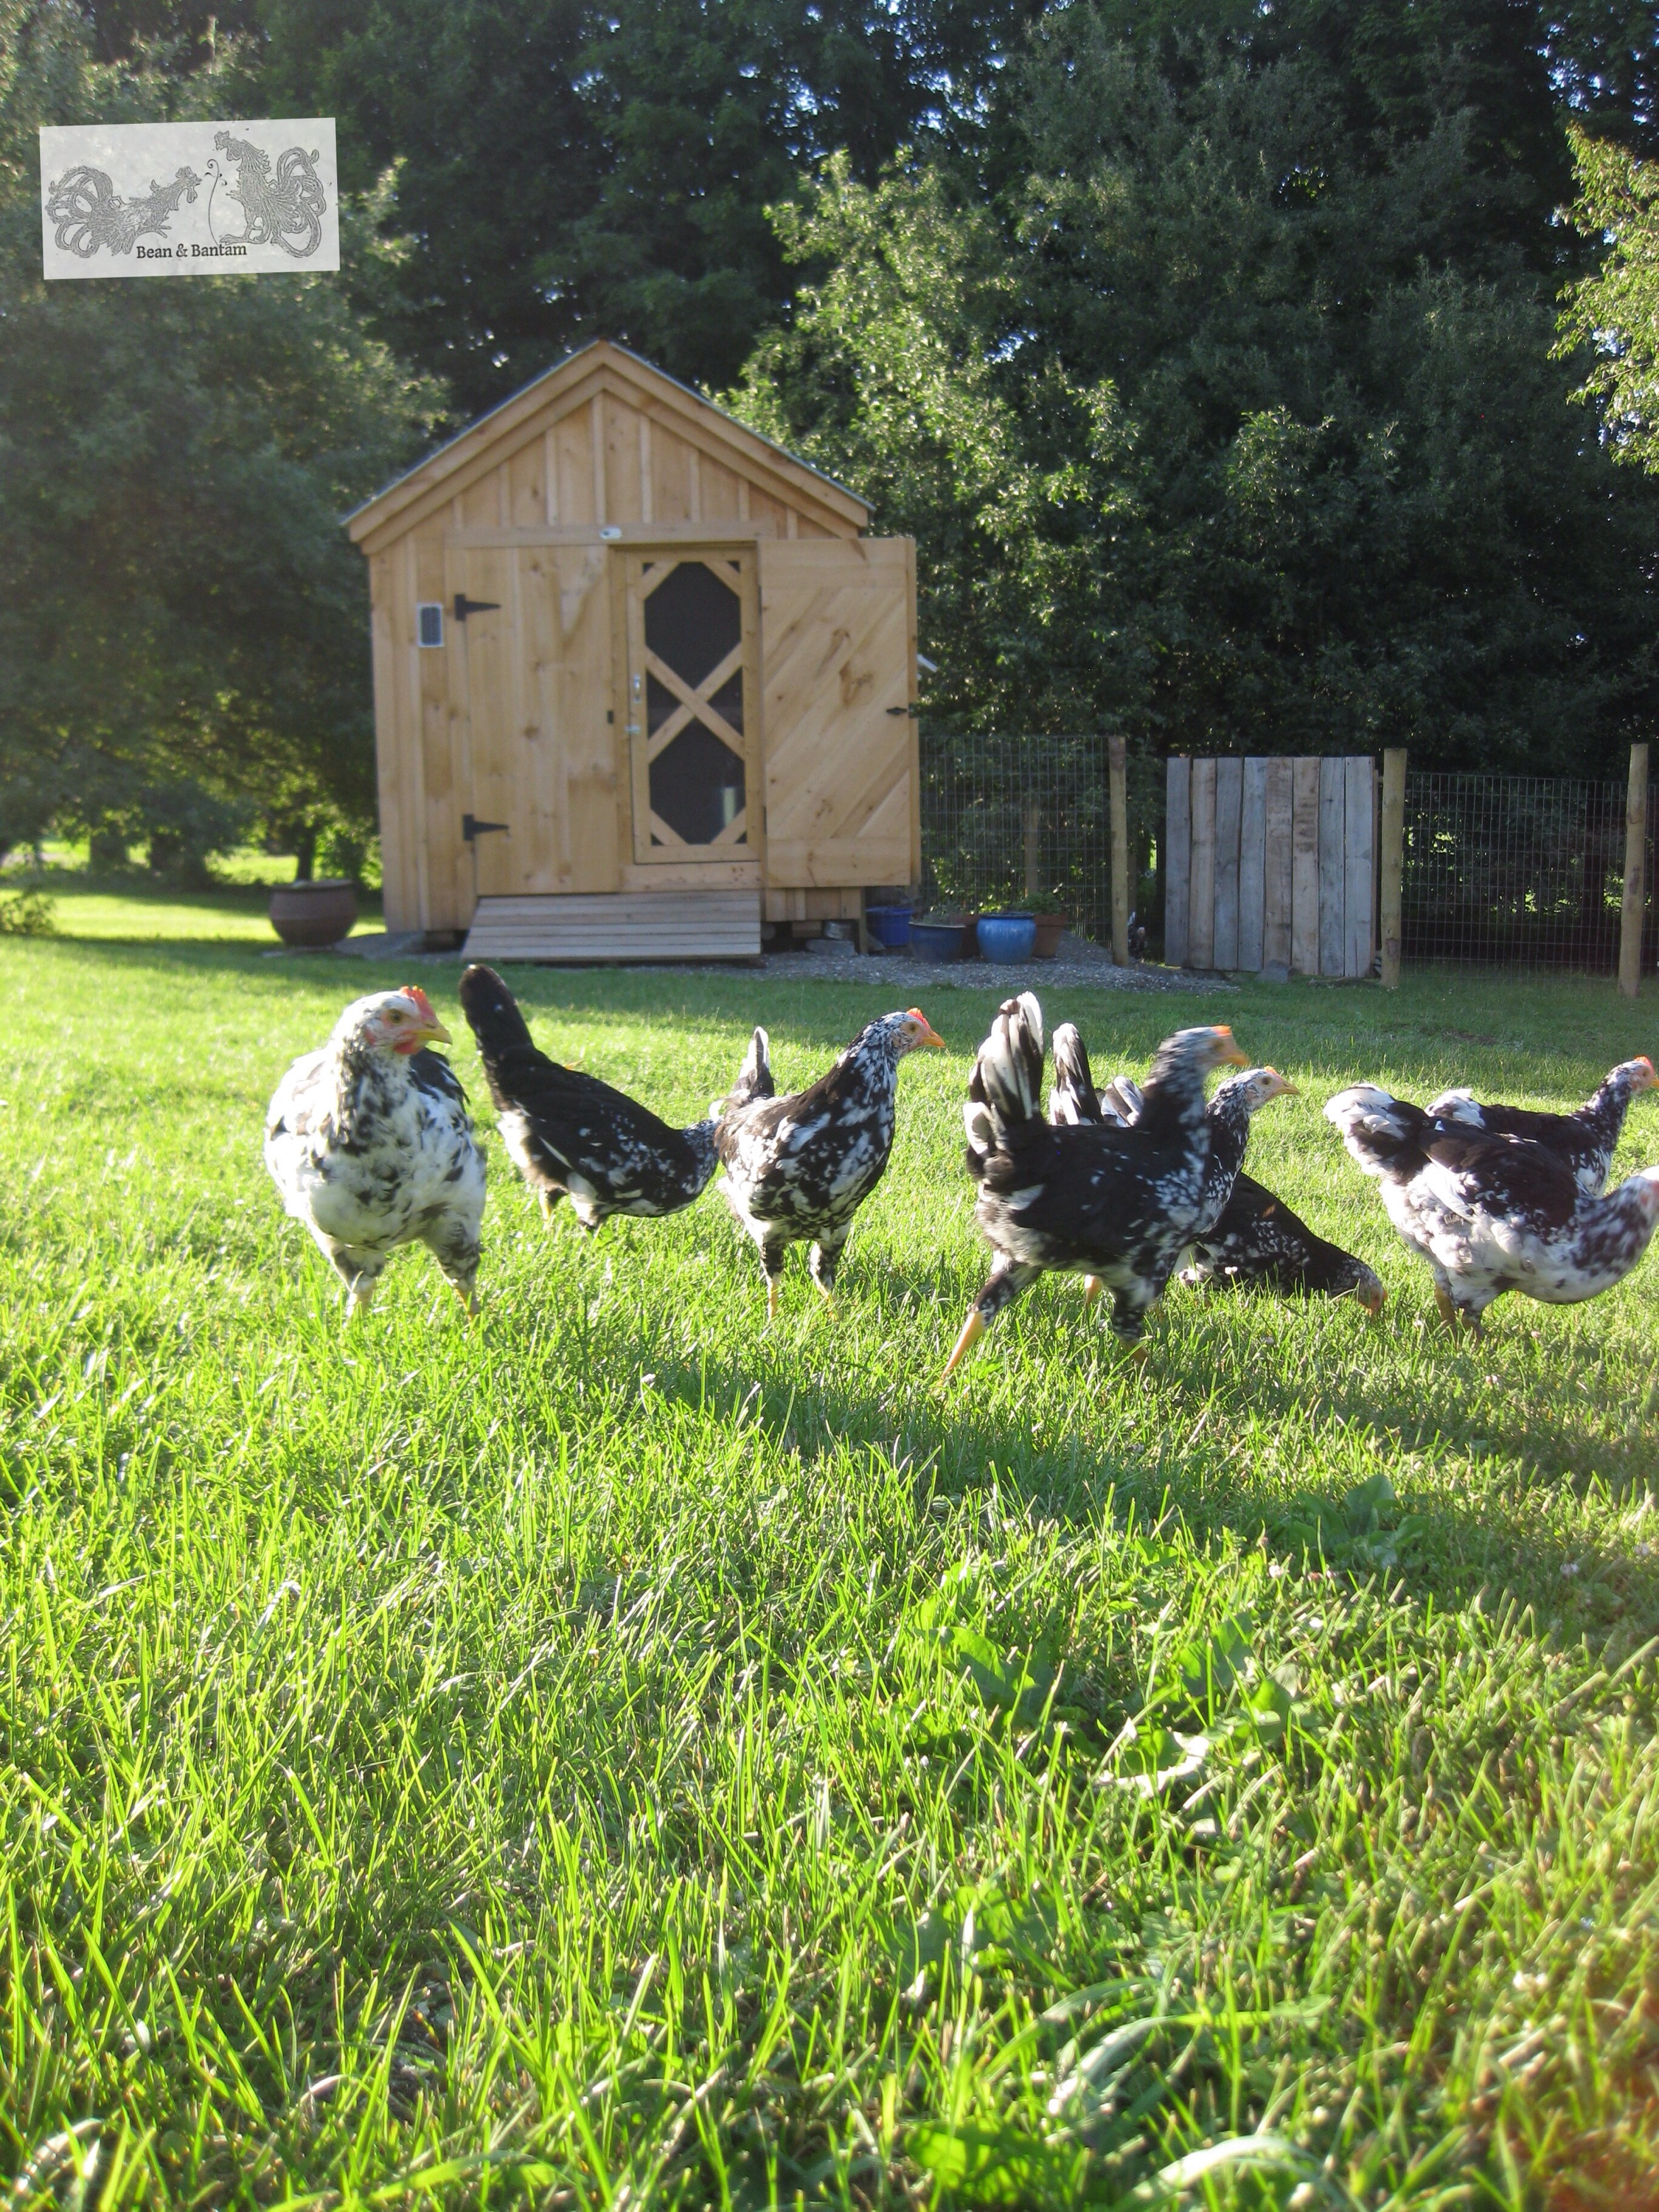 Mottled Java chicks free range outside the coop